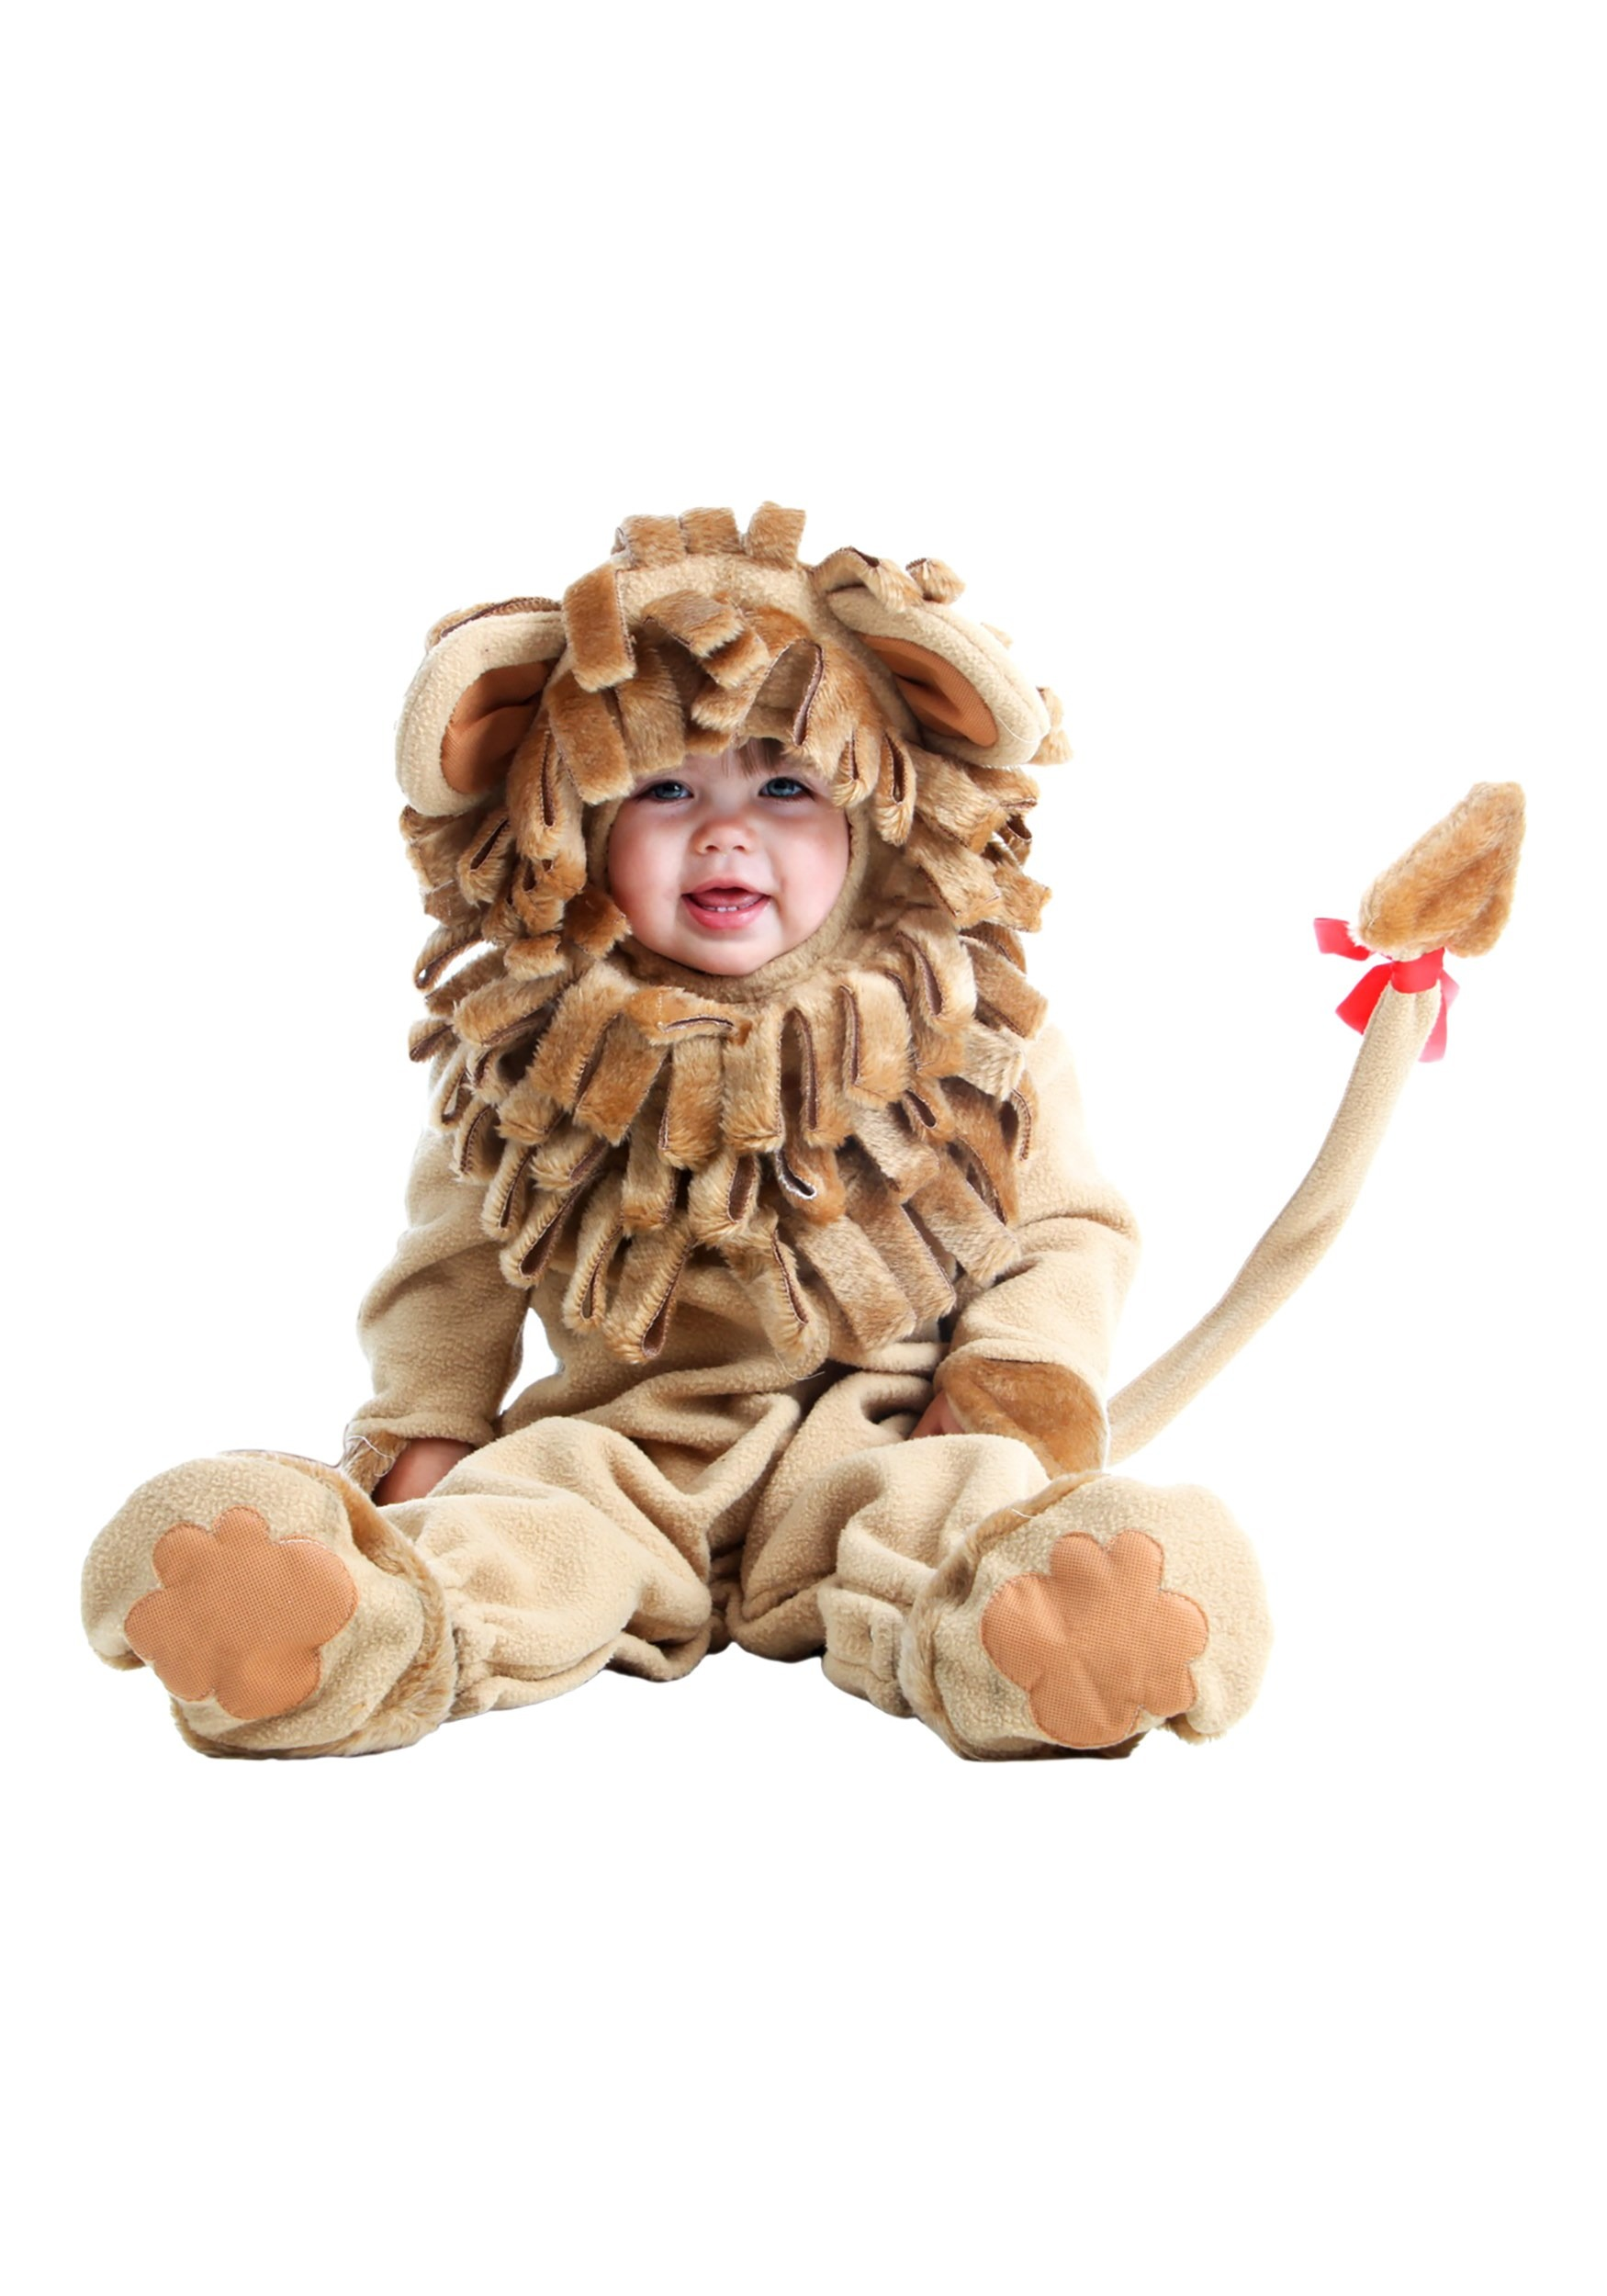 Deluxe Infant Cowardly Lion Costume  sc 1 st  Halloween Costume & Toddler Lion Costume - Infant Cowardly Lion Wizard of Oz Costumes